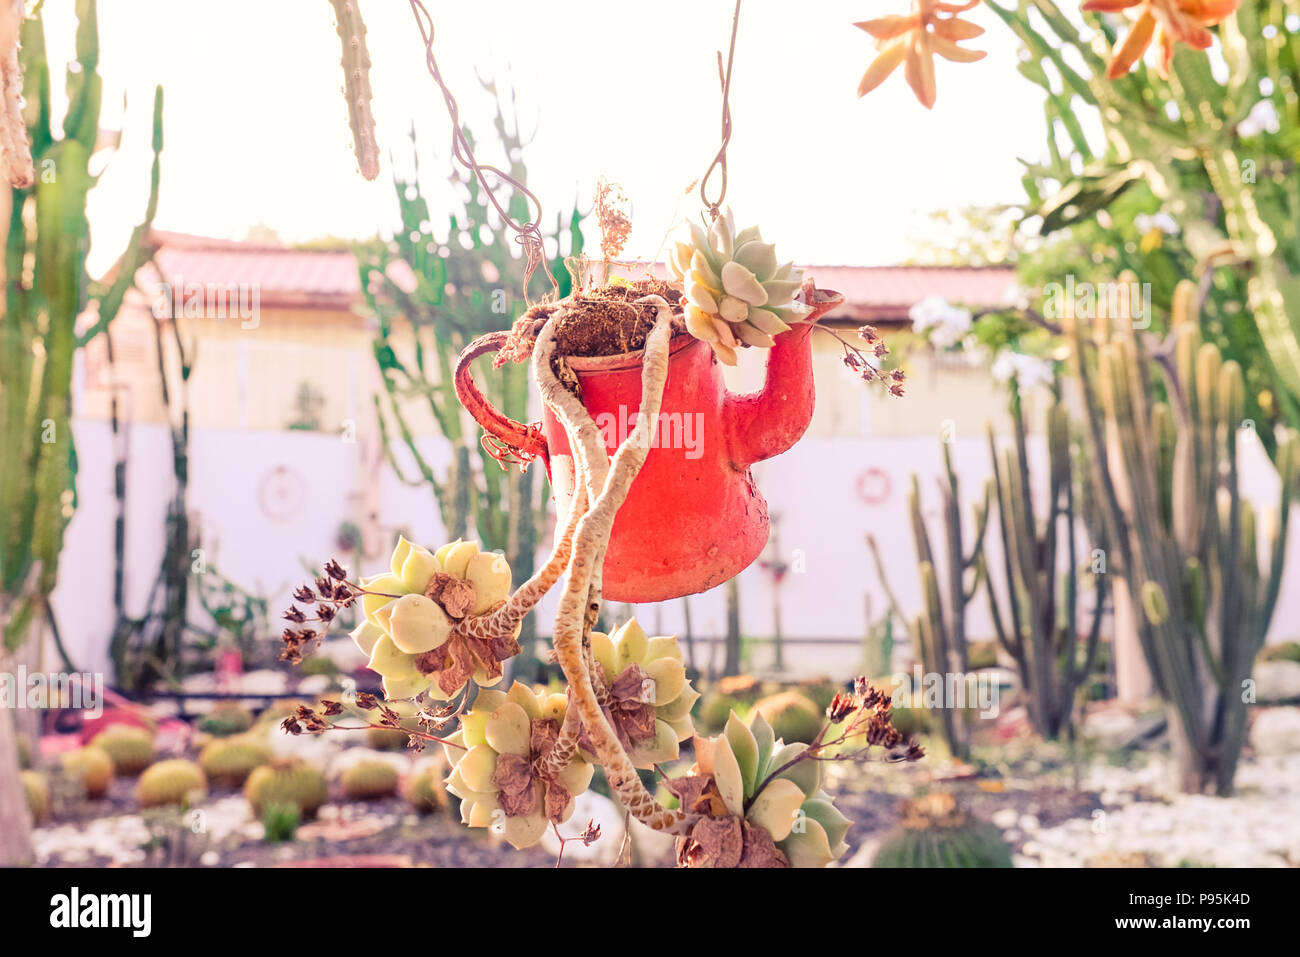 Close Up Succulent Plants In Suspended Old Vintage Red Watering Can As Flower Pot In A Cactus Garden Outdoor Decoration Flower Pot Design Trendy Stock Photo Alamy